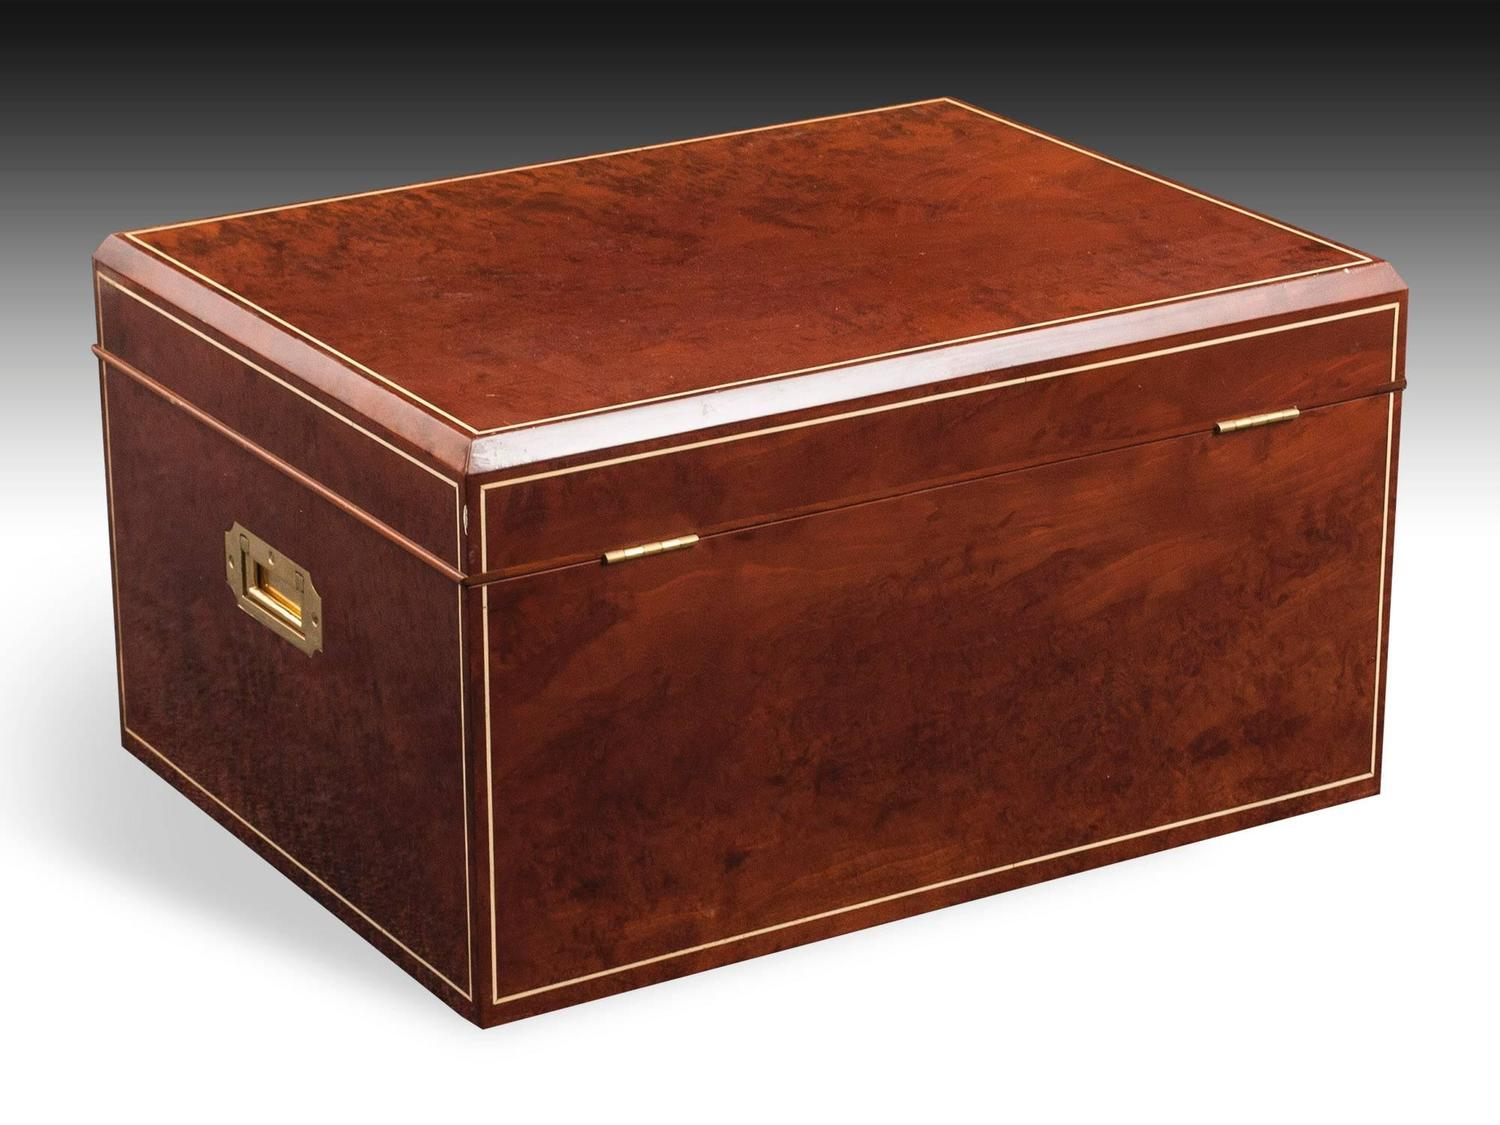 Dunhill Humidor For Sale at 1stdibs